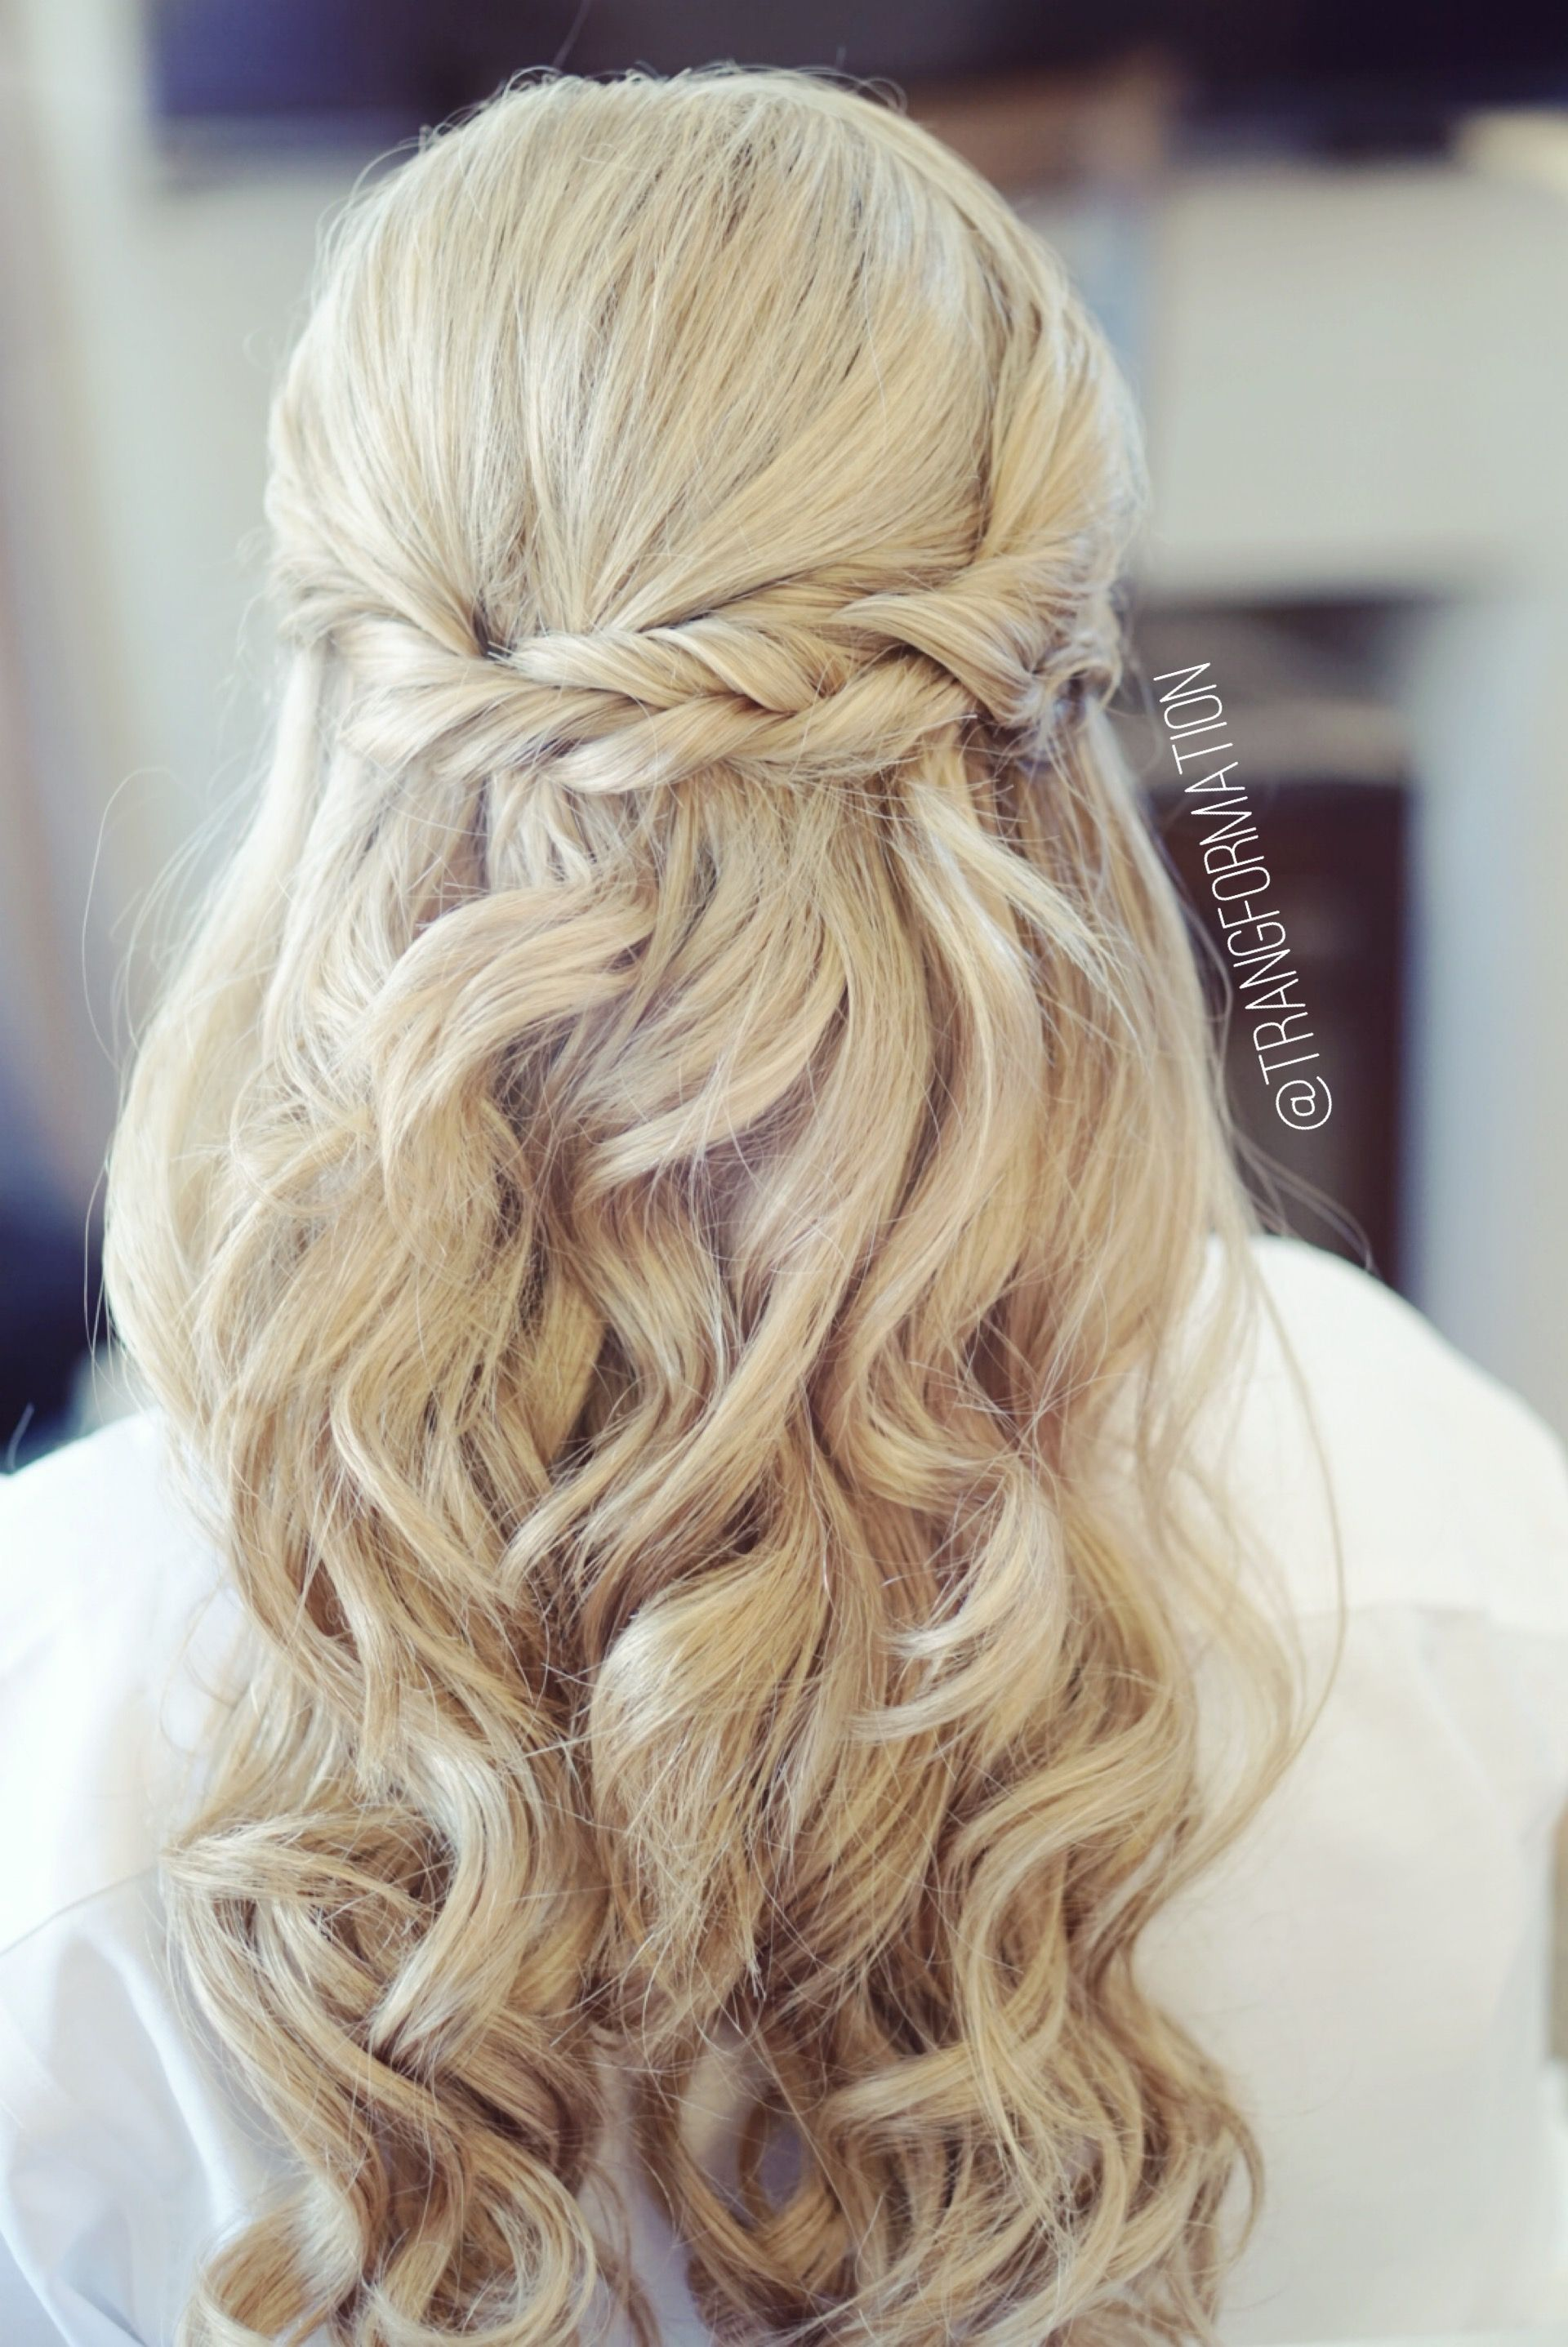 Half Up Half Down Bridal Hair Wedding Hair Bride Wedding Hairstyles Wedding Bridal Wedding De Hair Styles Bridal Hair Half Up Half Down Long Hair Styles